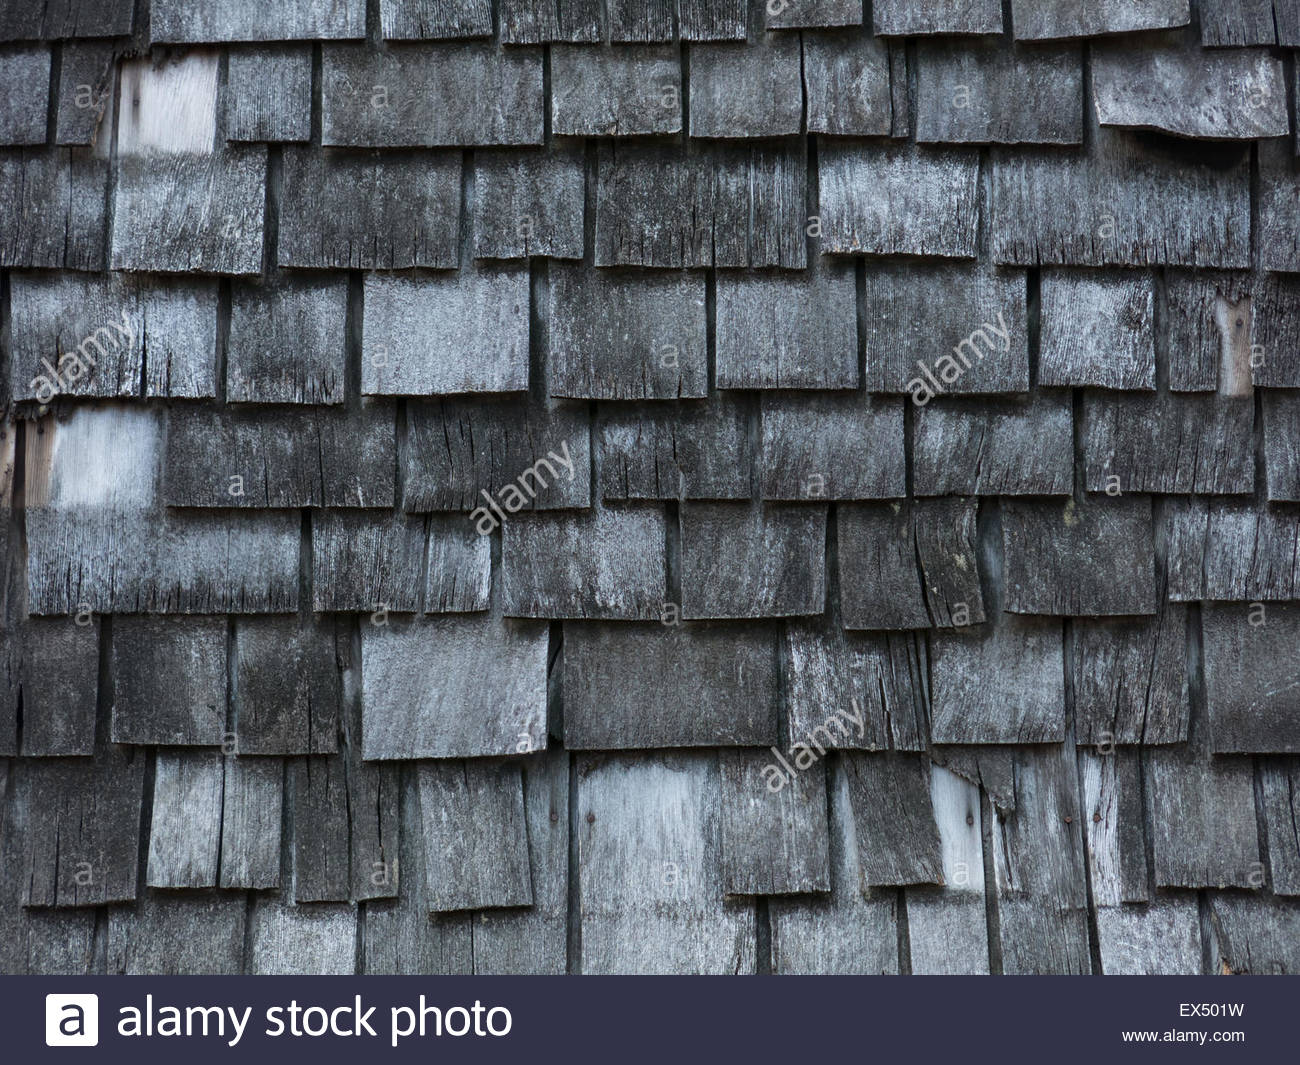 Background of aged wooden shingles - Stock Image